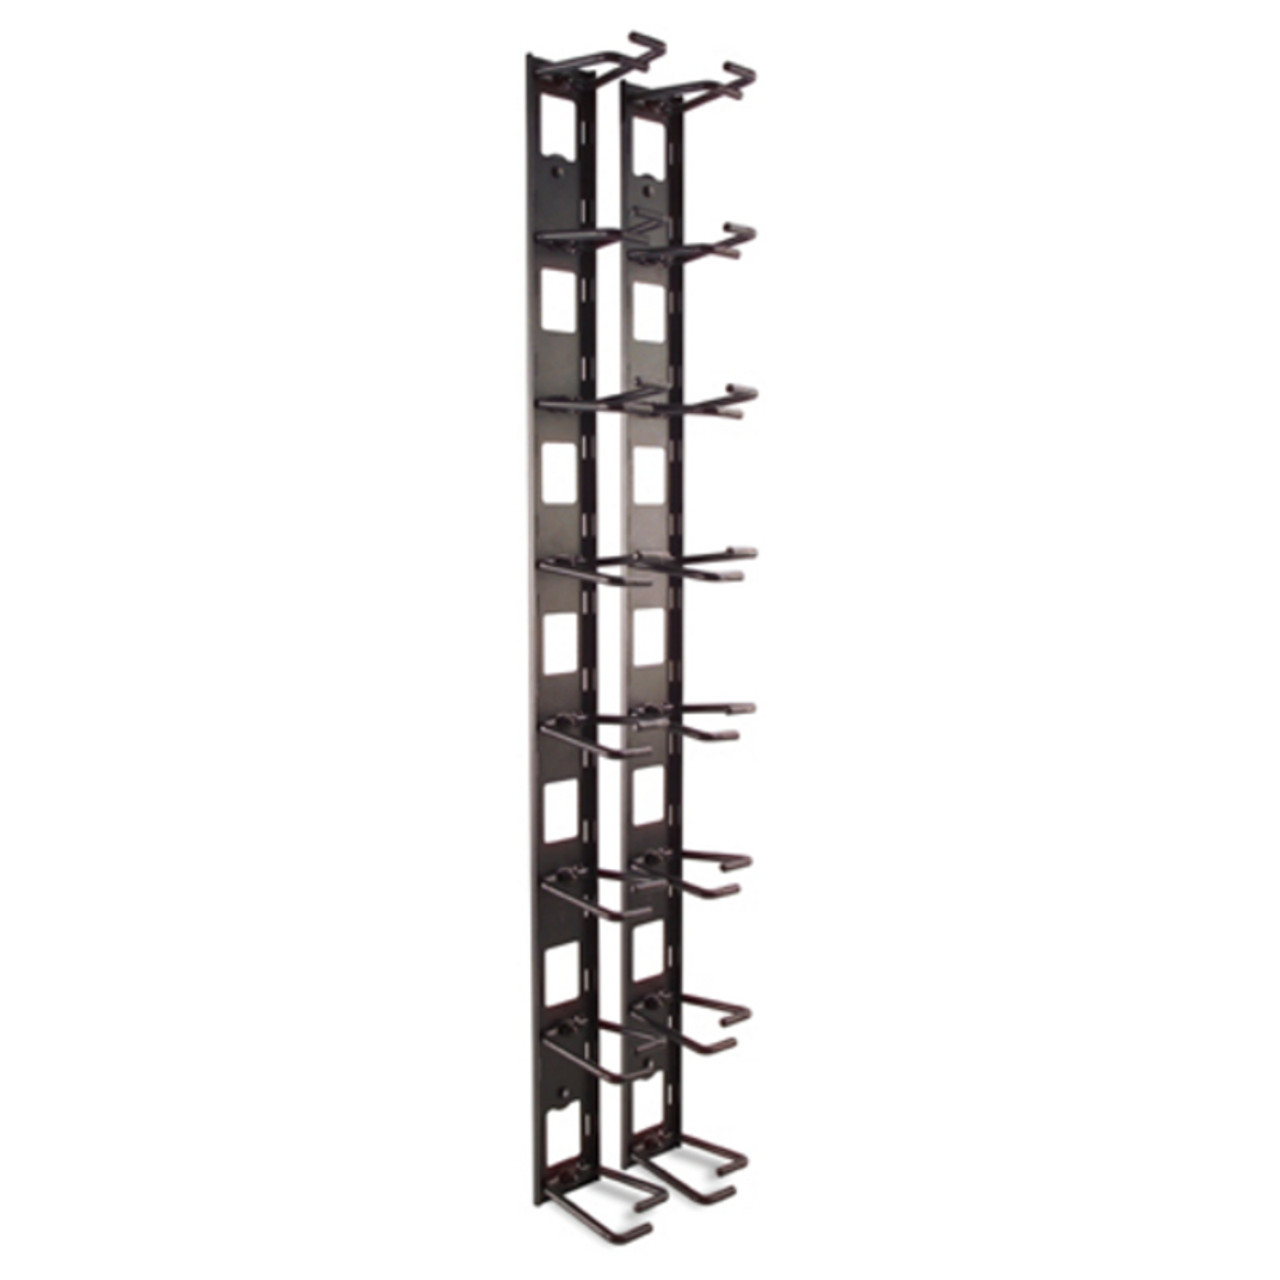 Image for APC AR8442 Vertical Cable Organizer, 8 Cable Rings, Zero U CX Computer Superstore